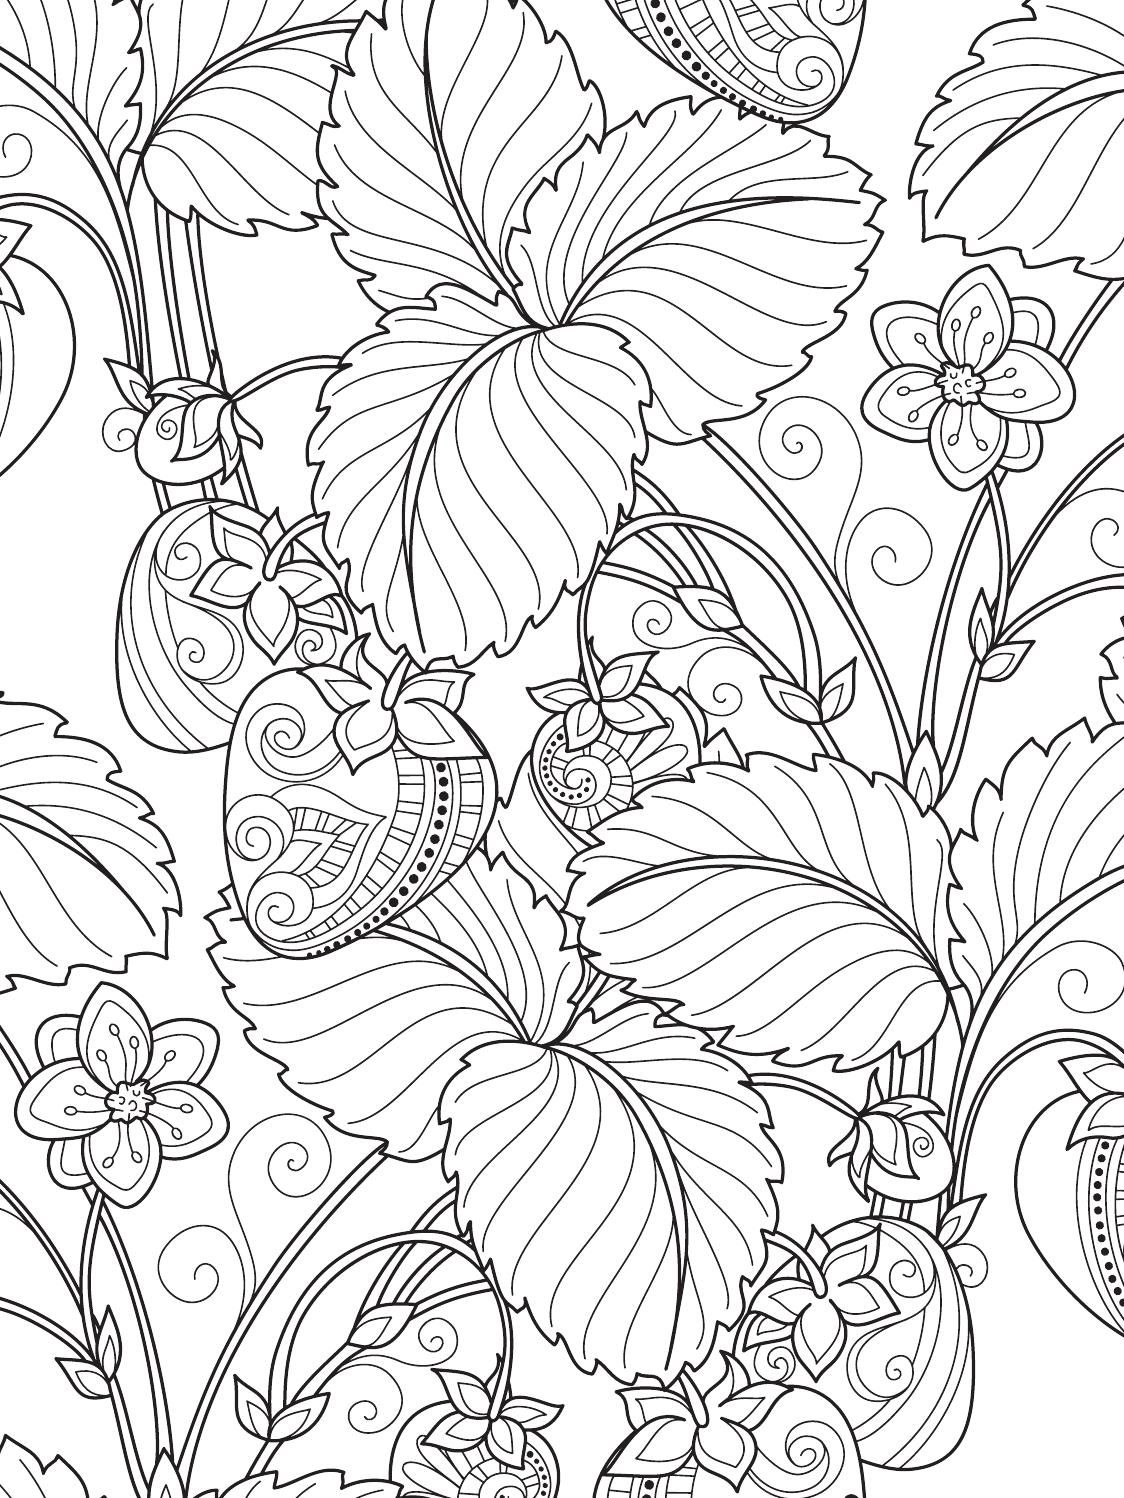 Terapia Da Cor Nº3 Coloring Books Pattern Coloring Pages